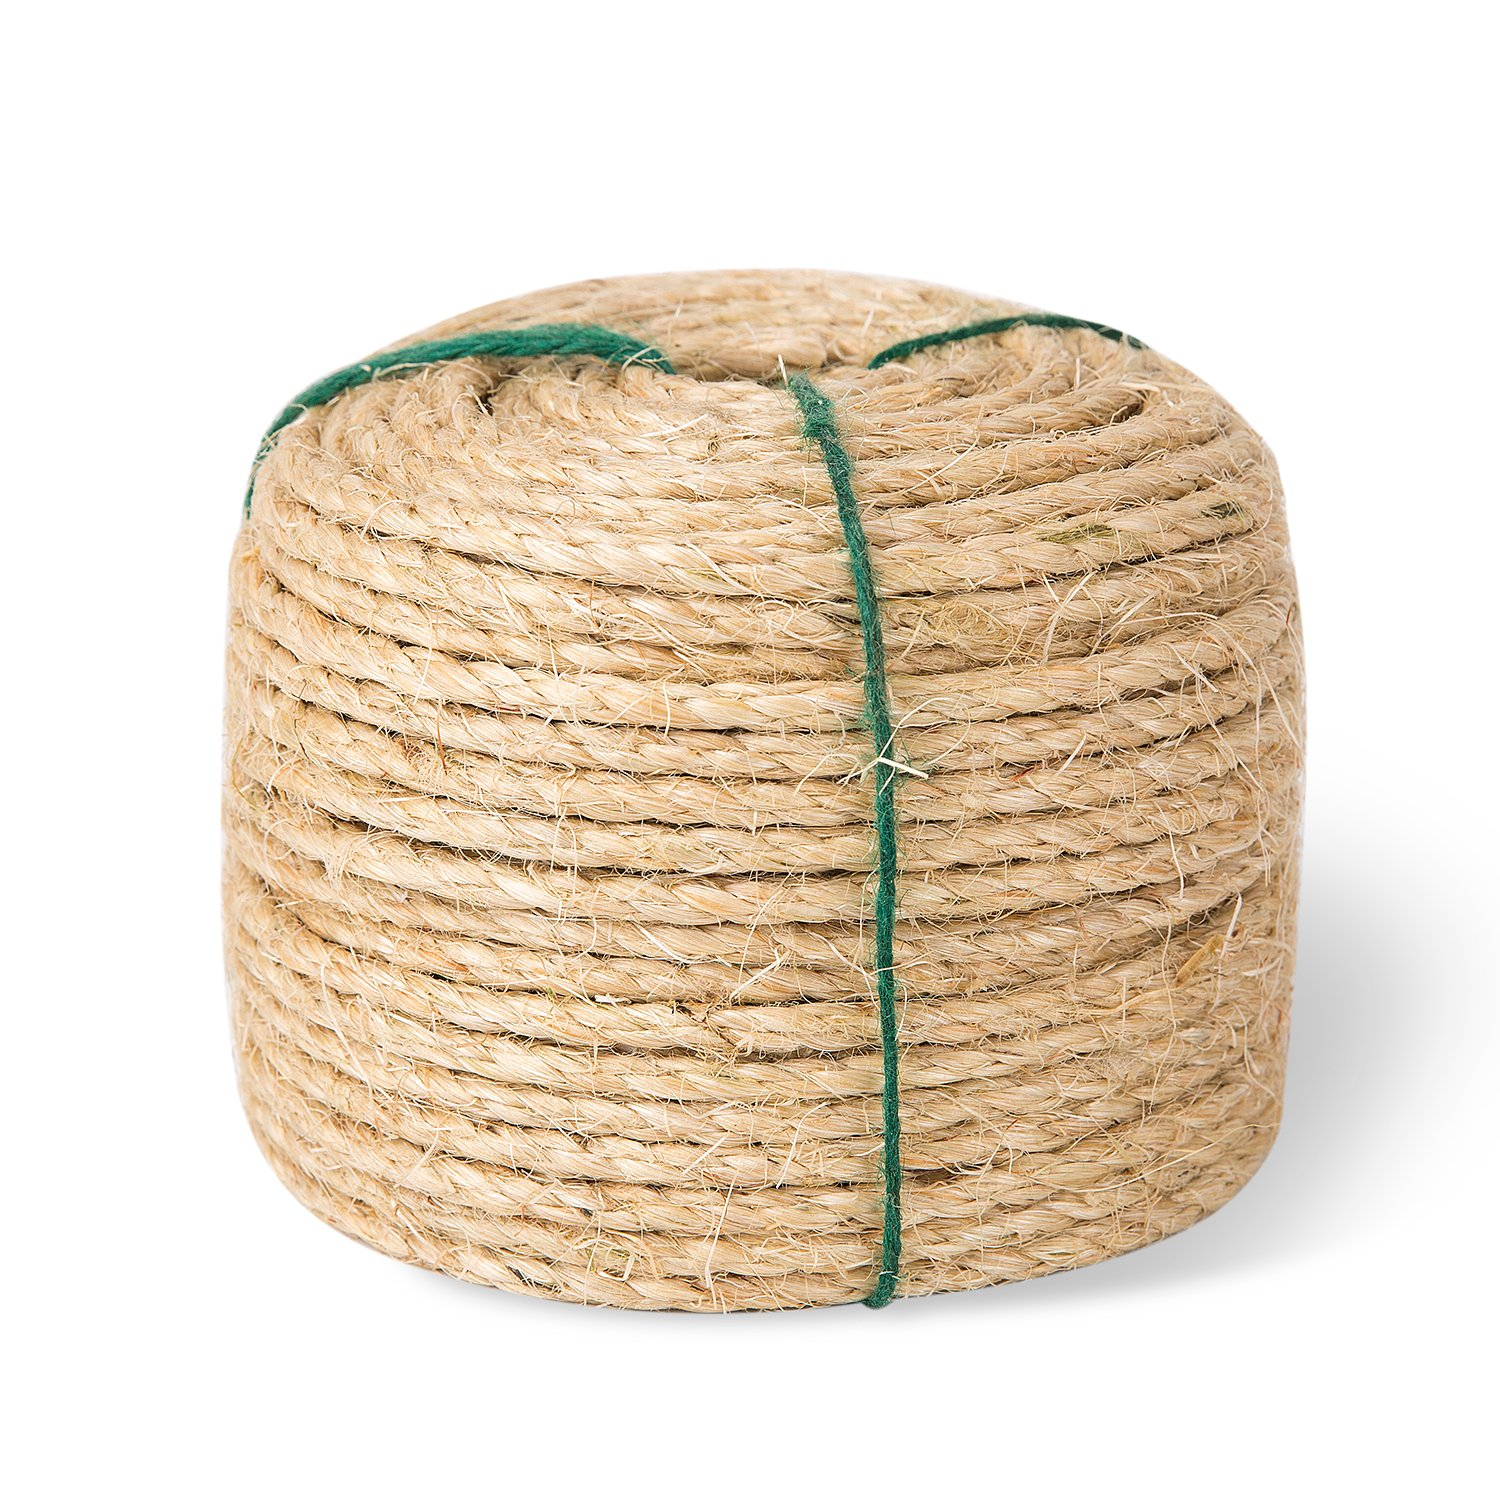 Yangbaga Cat Scratching Post Sisal Rope Replacement - 1/4 Inch - Natural Fiber and Color 164FT